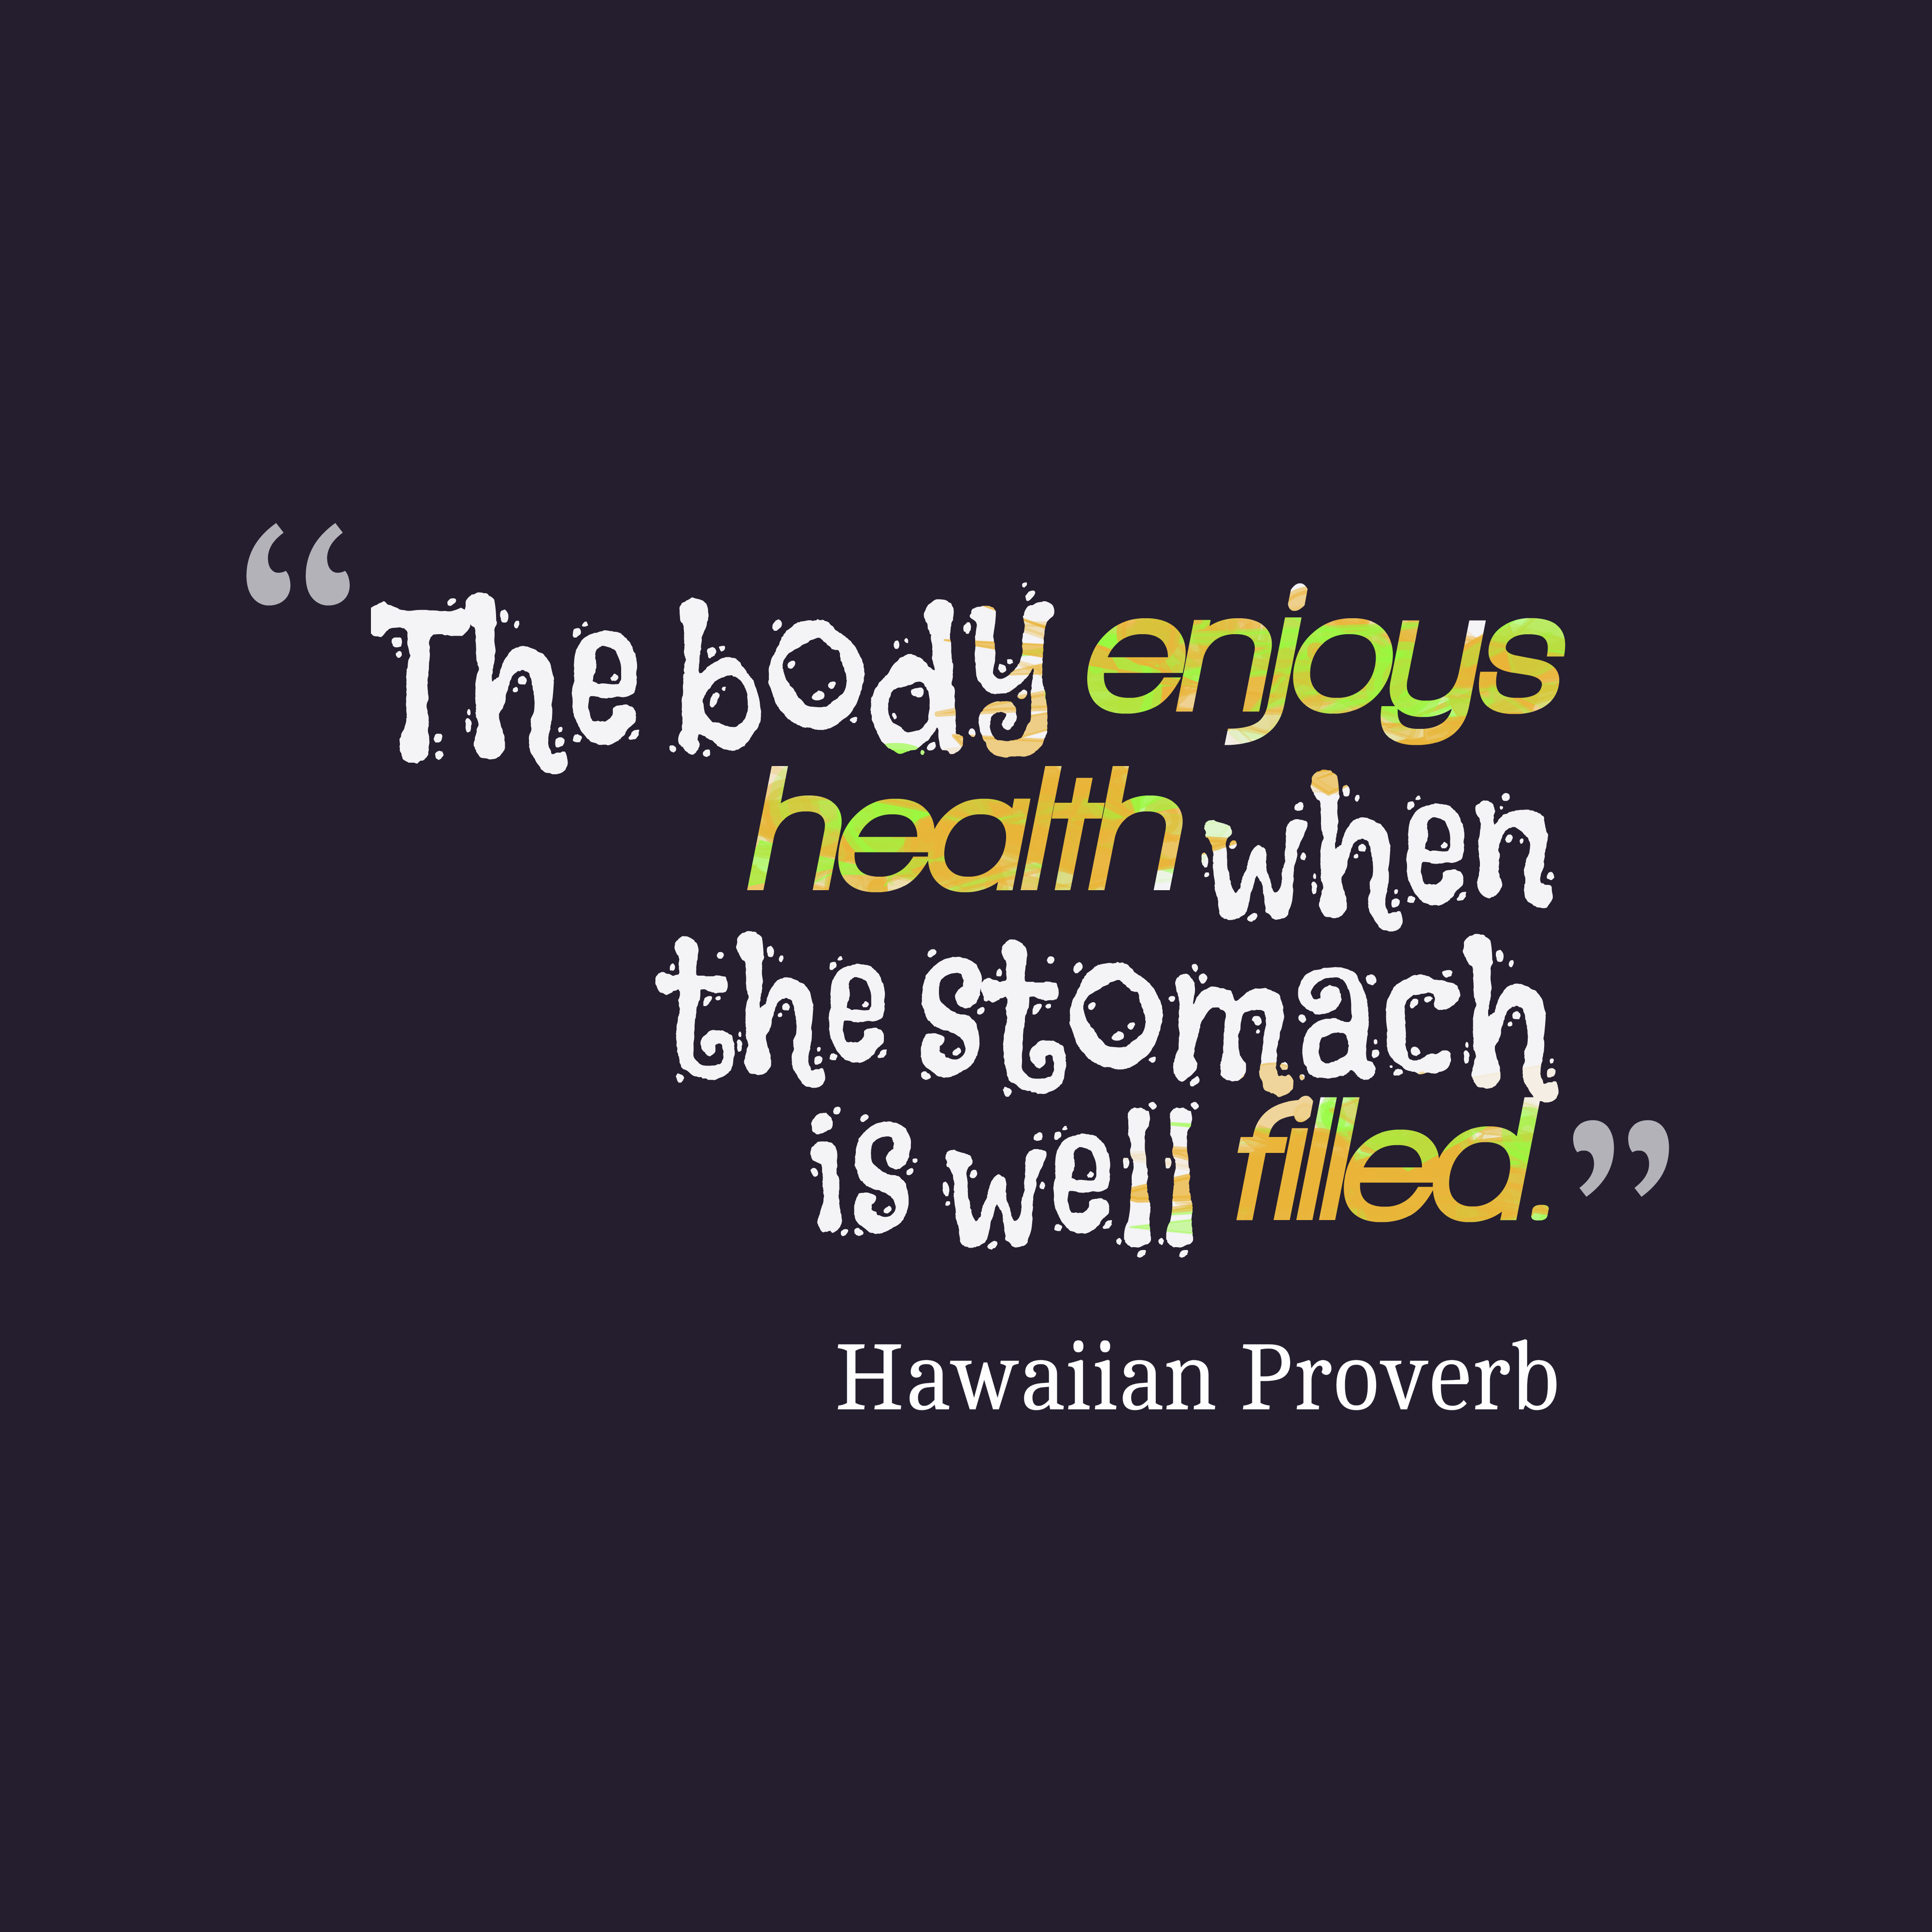 Quotes image of The body enjoys health when the stomach is well filled.